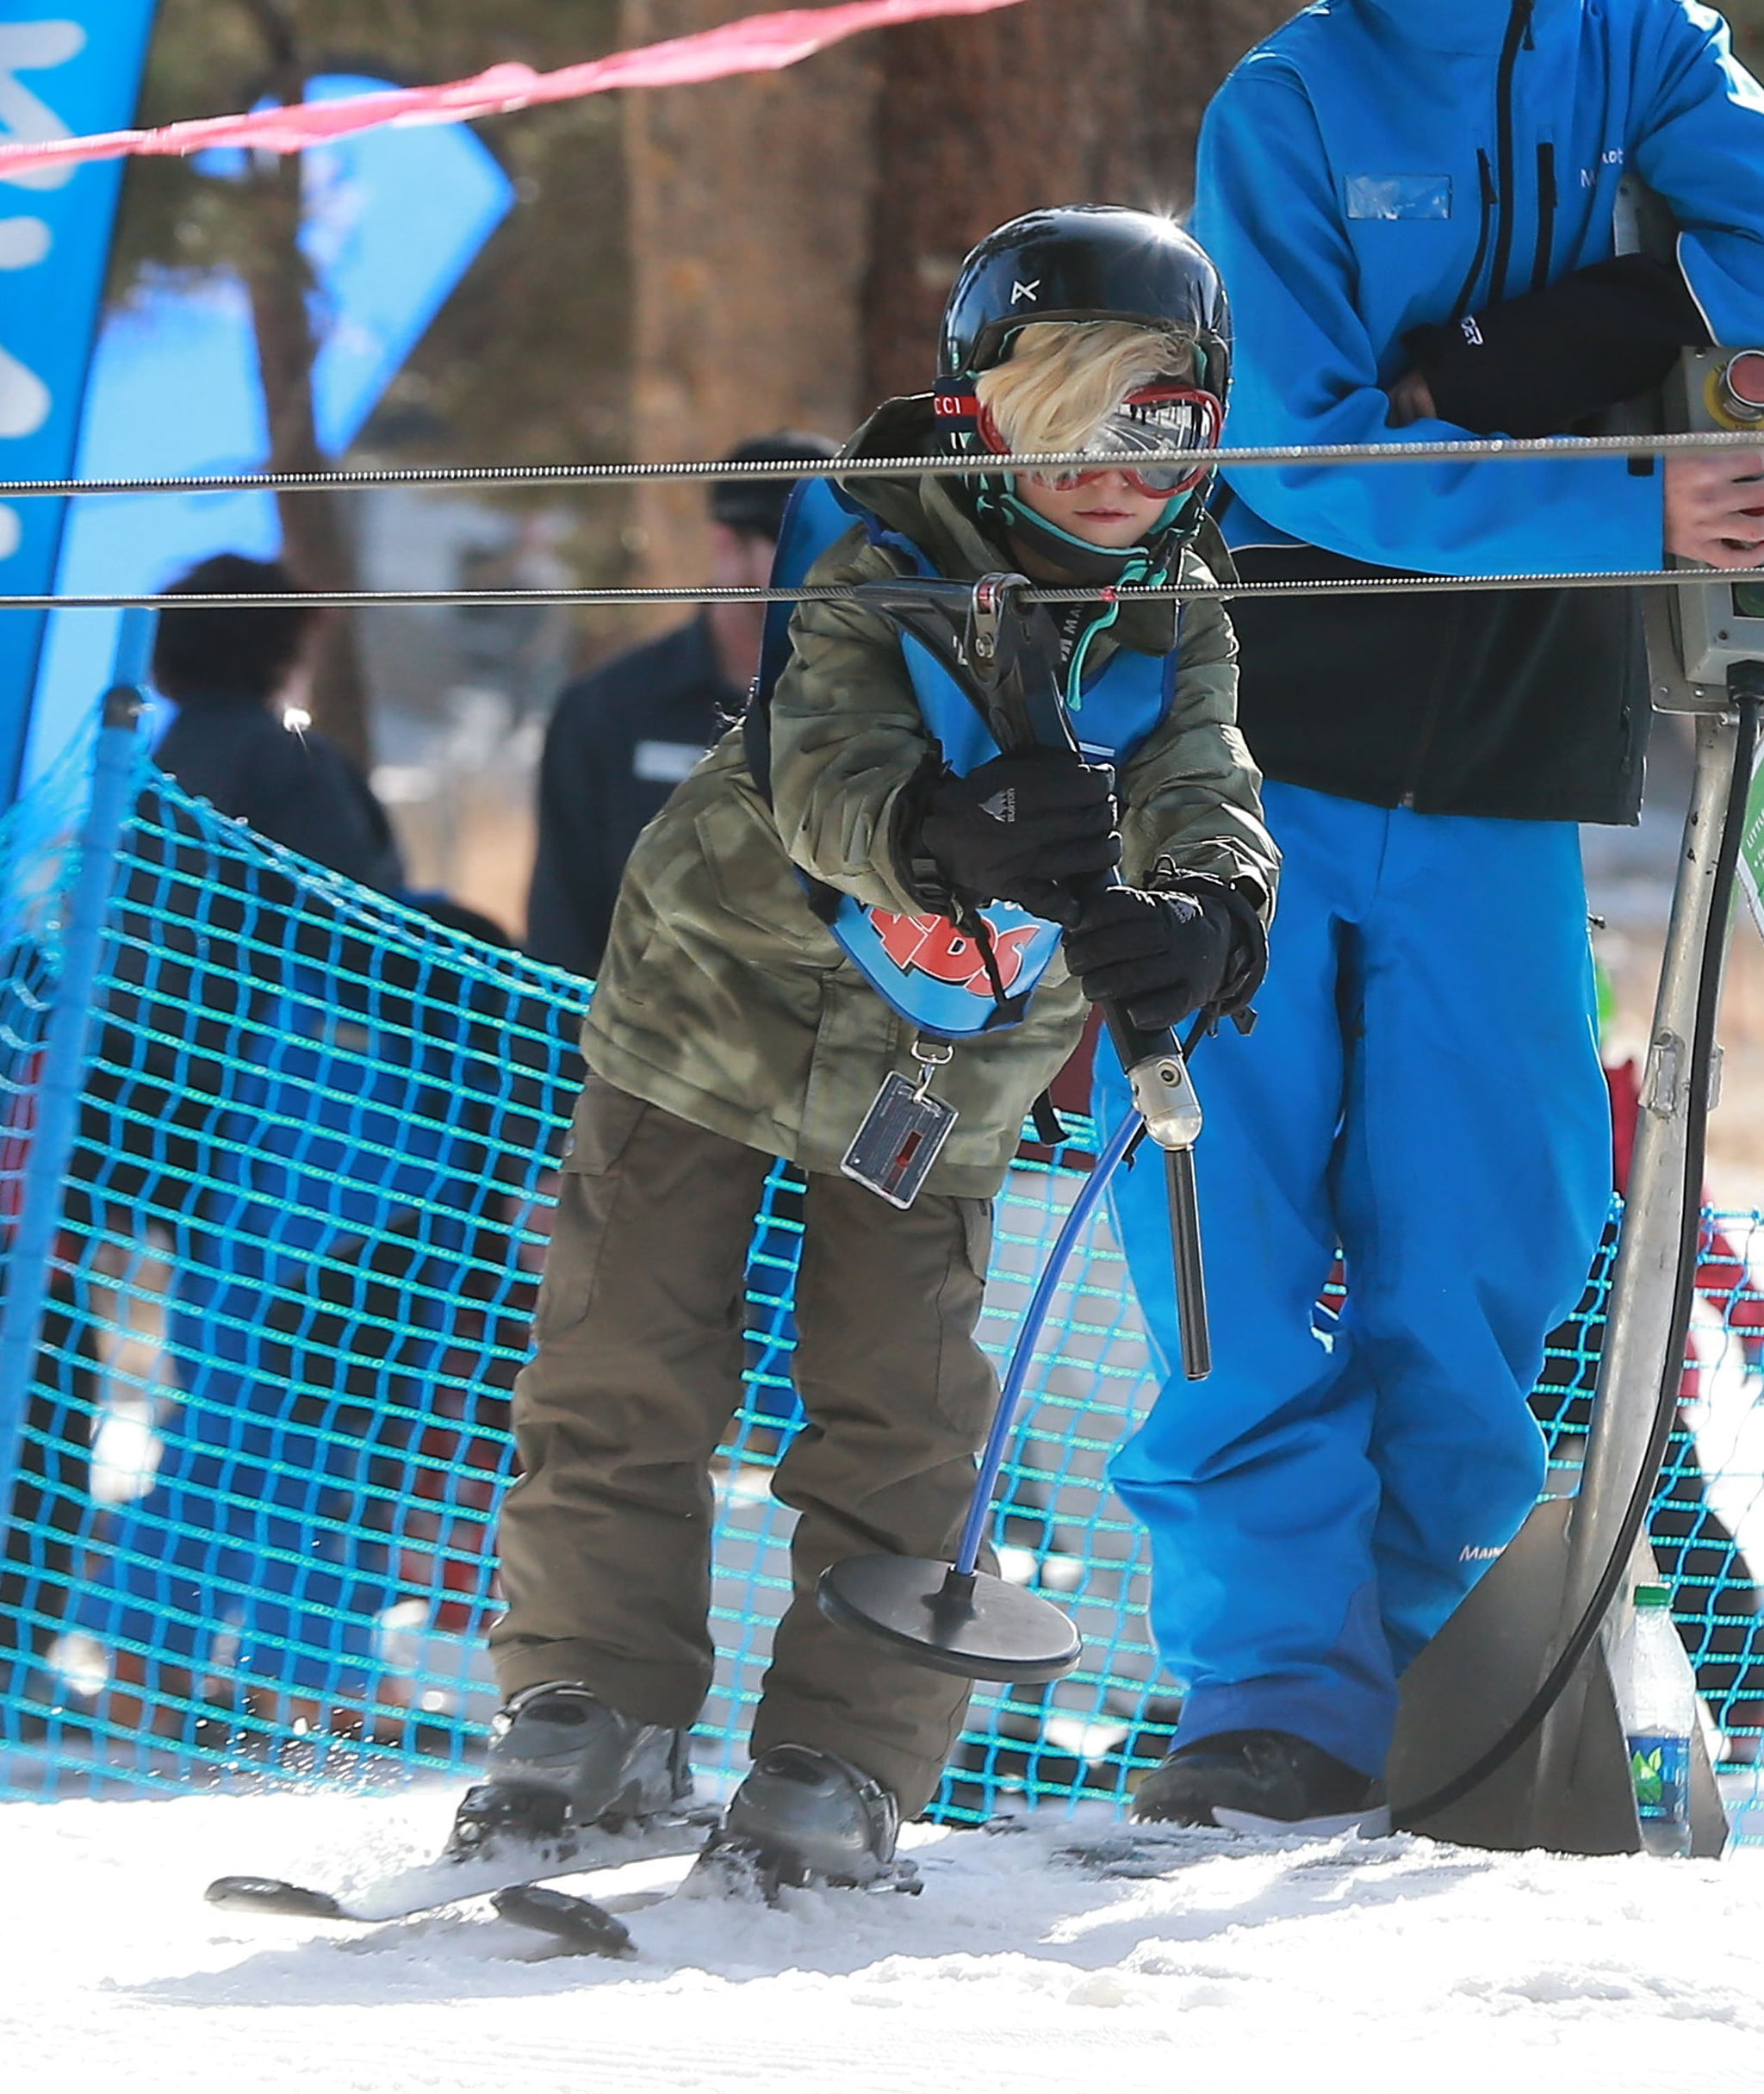 Zuma tried his hand at skiing.